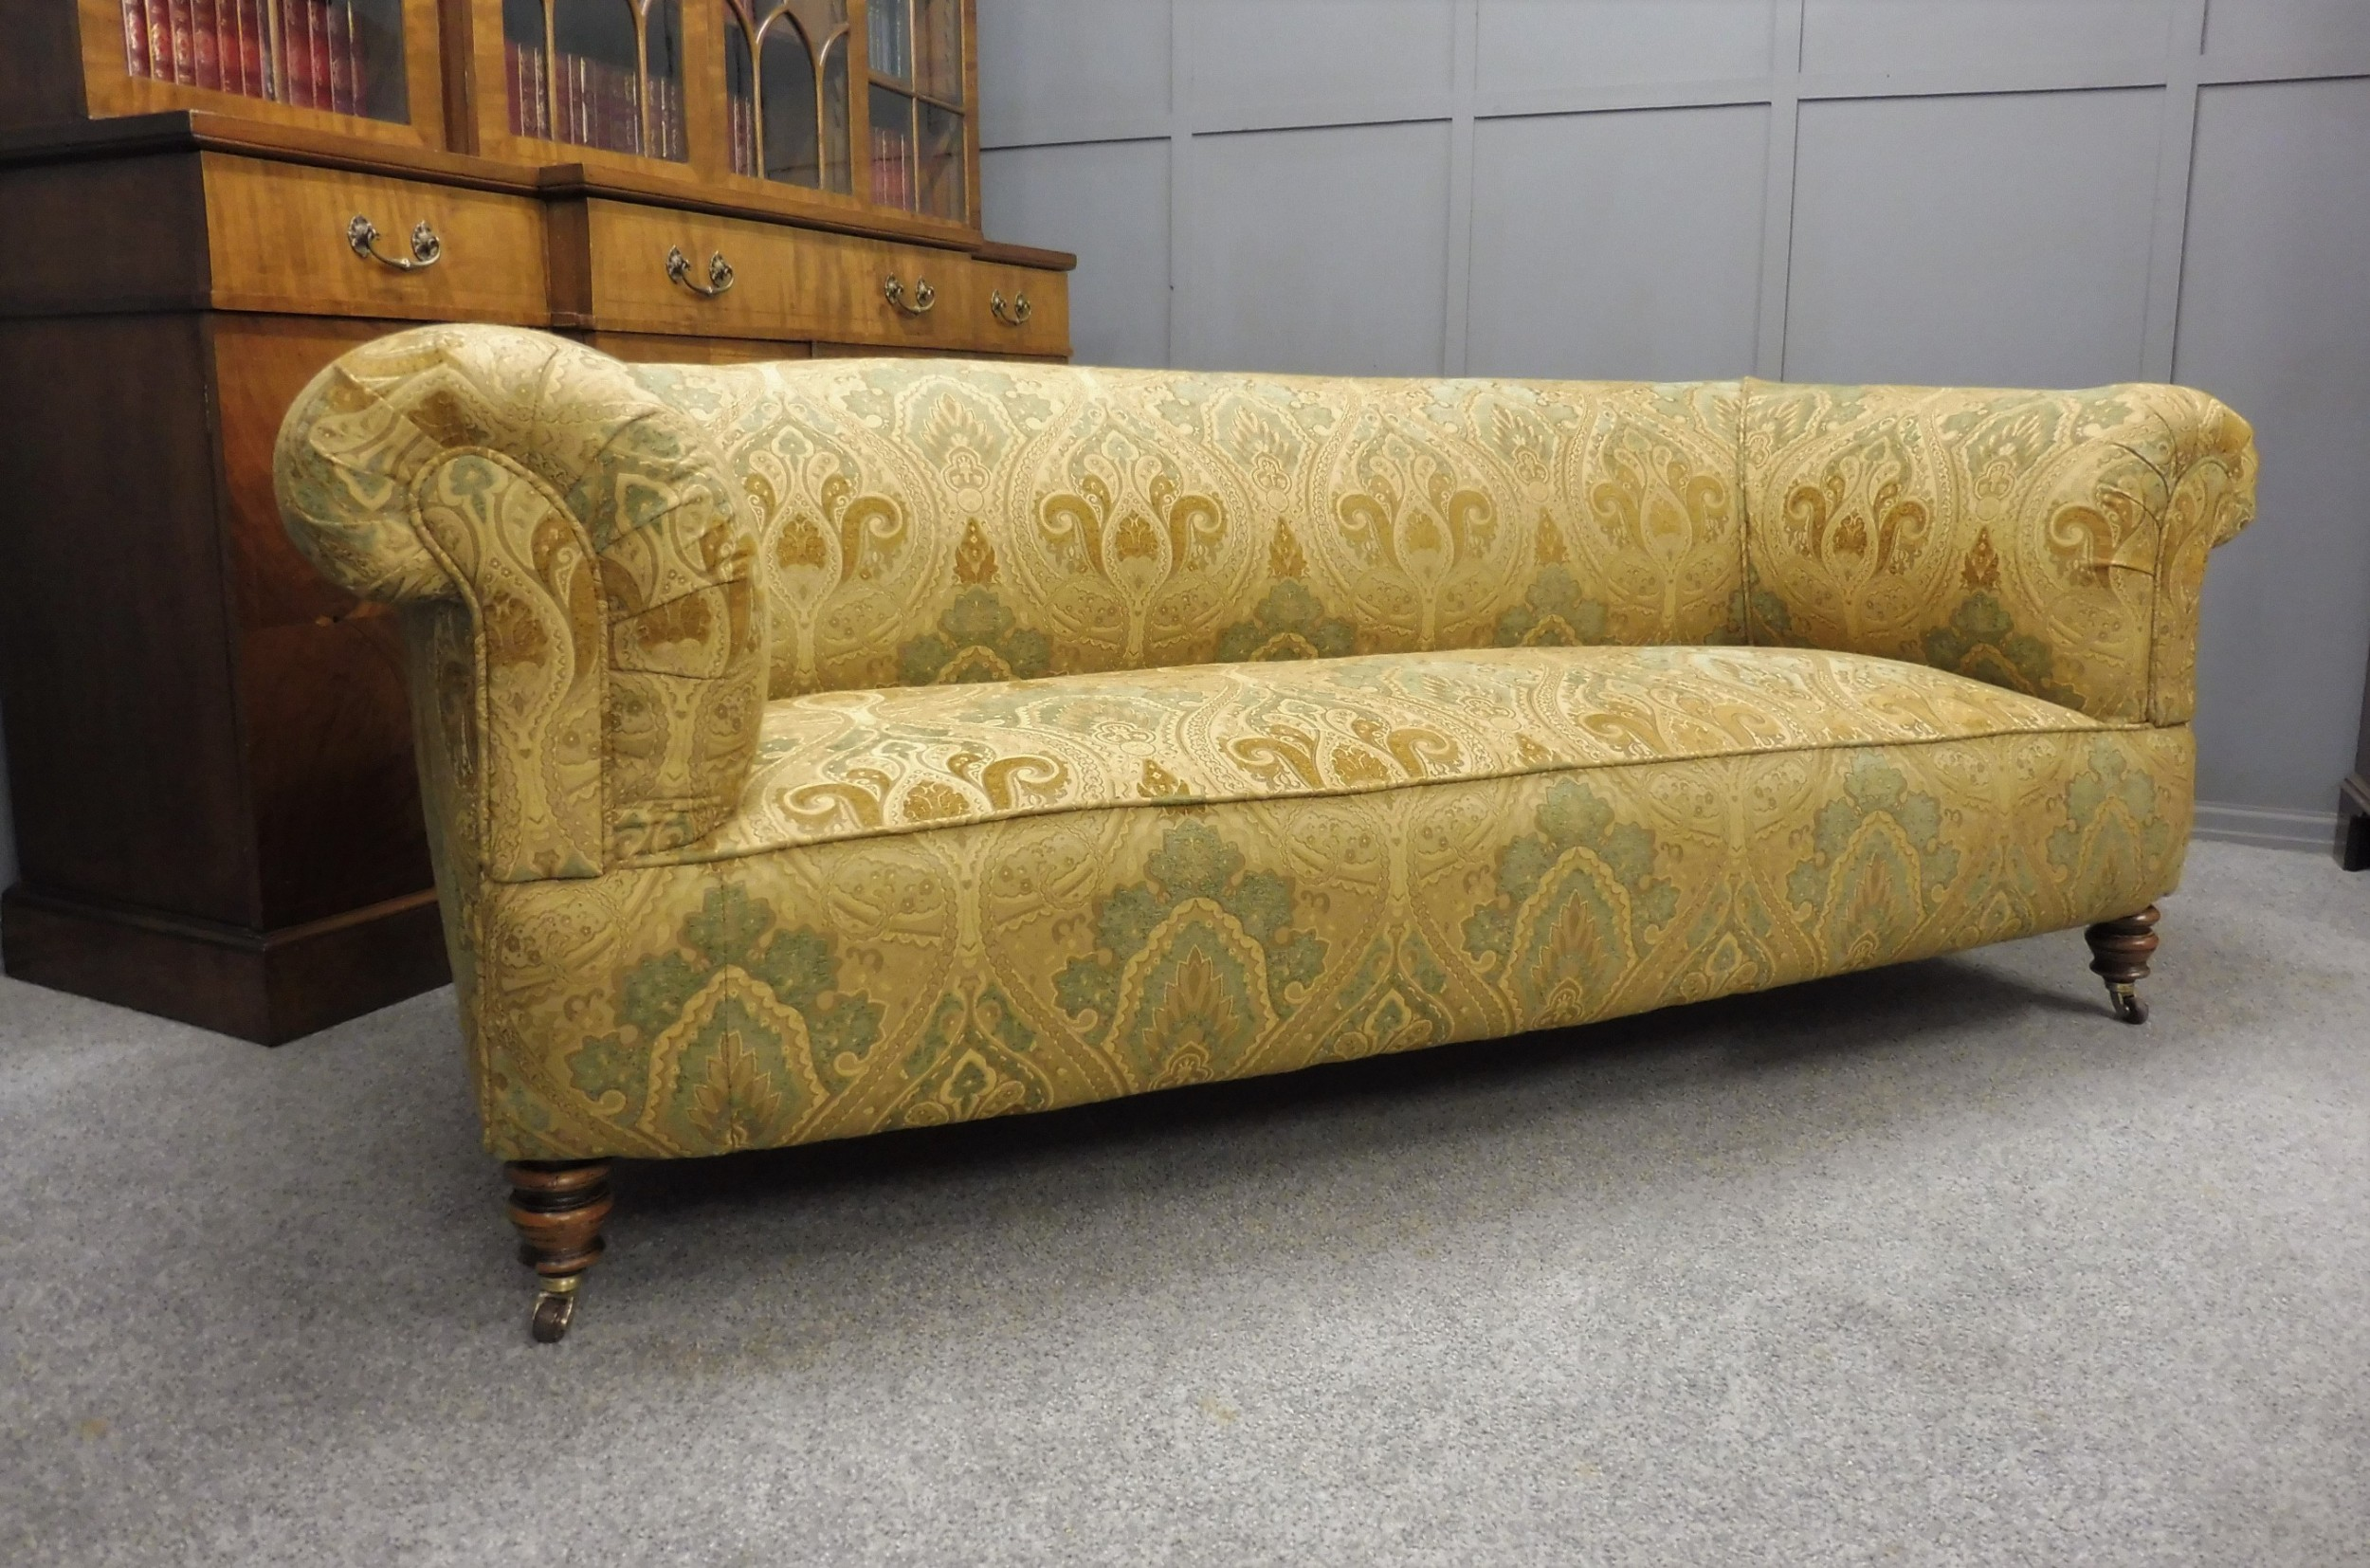 newly upholstered victorian chesterfield sofa